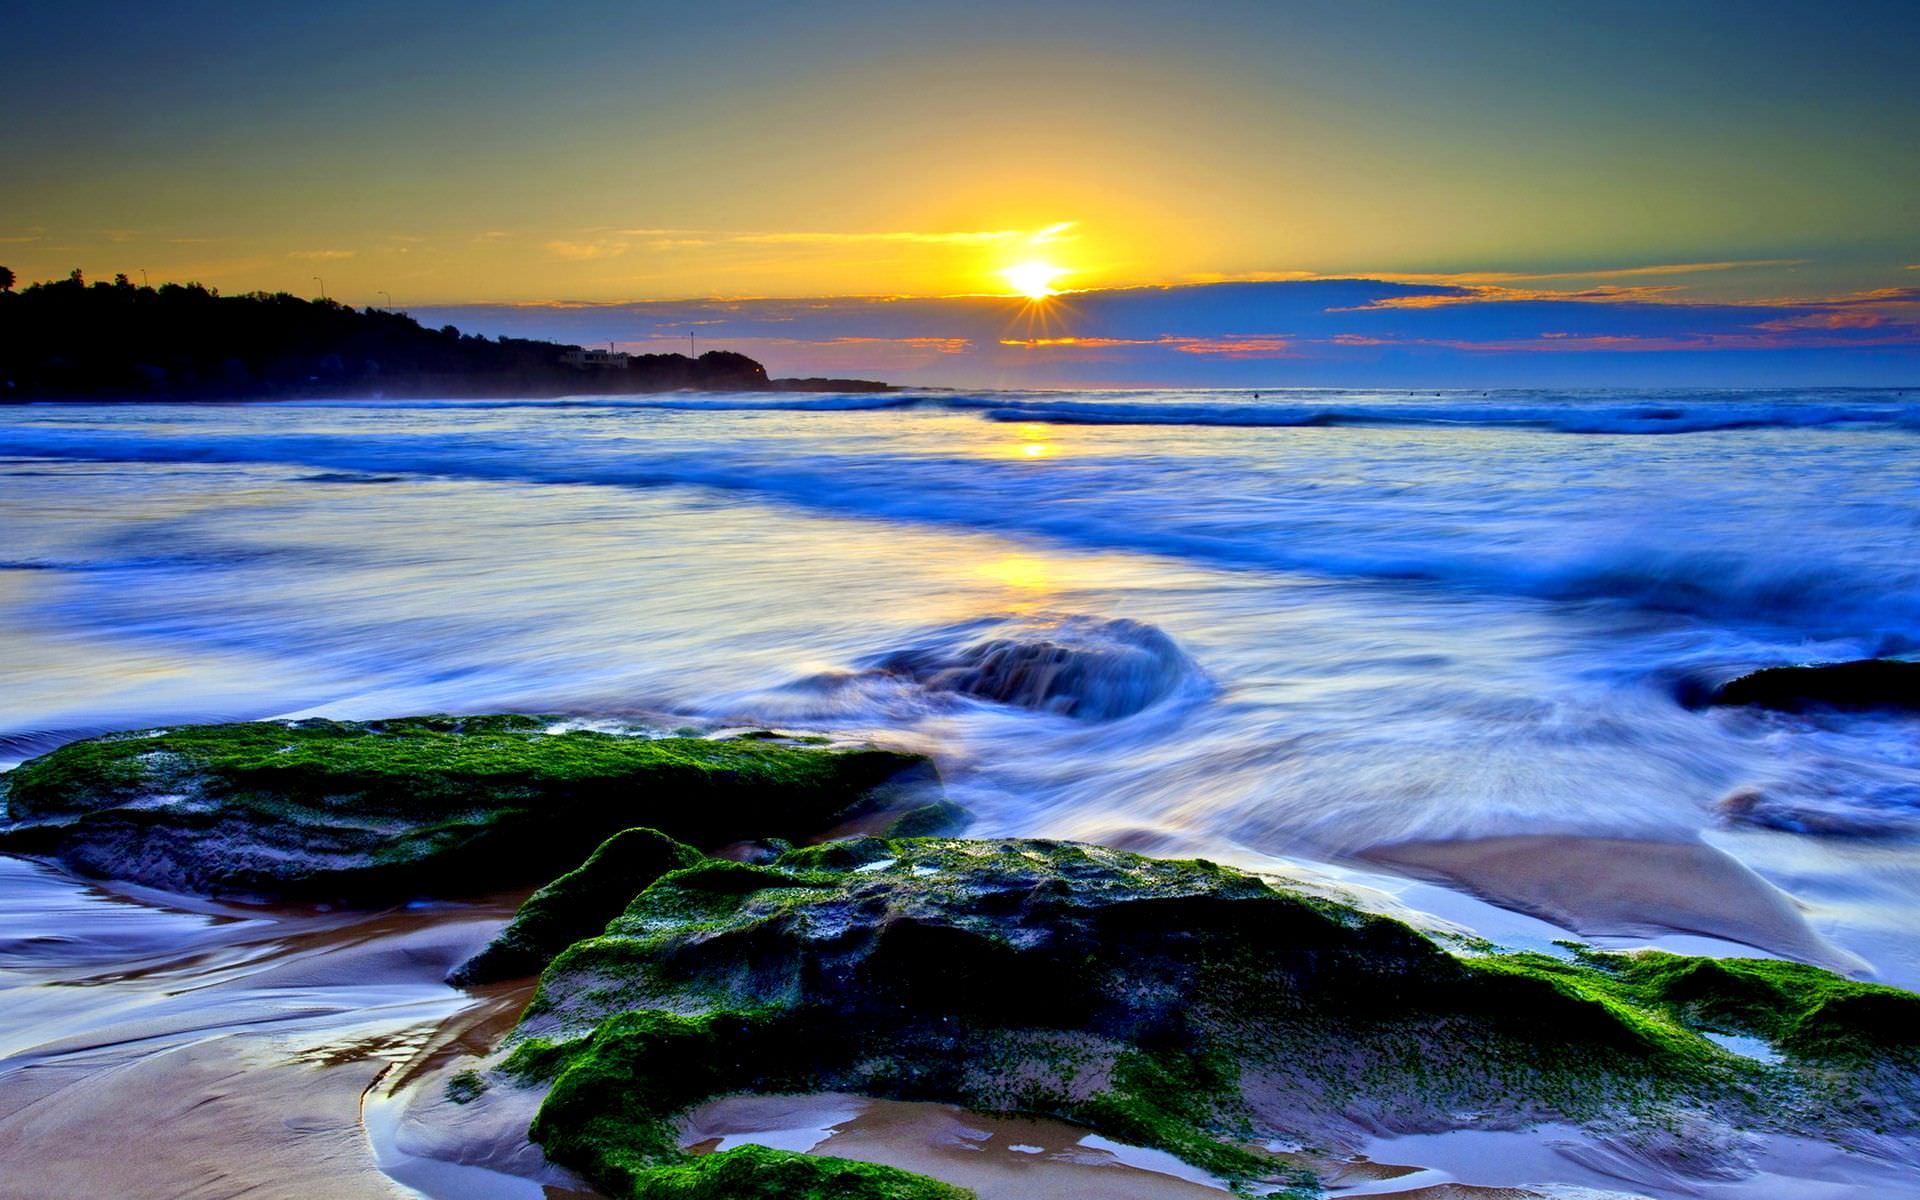 most beautiful ocean sunset widescreen high definition wallpaper